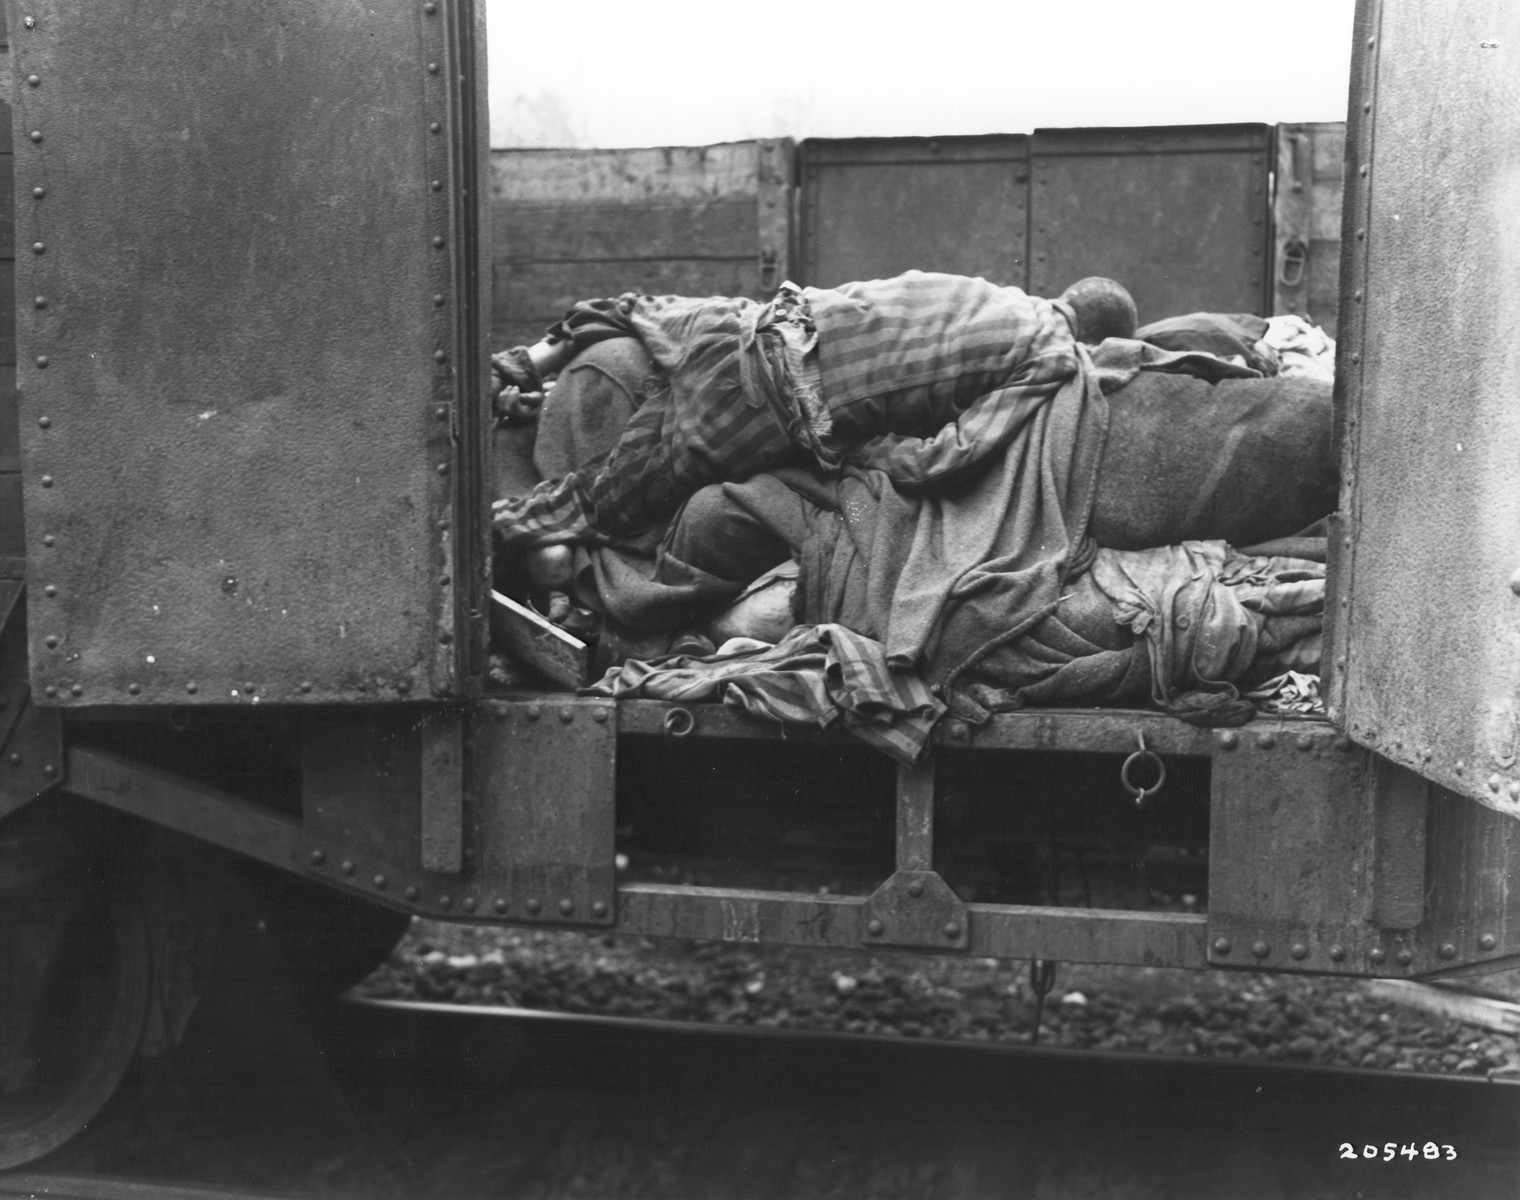 """A railroad car containing the bodies of prisoners who died while on an evacuation transport presumably headed for Dachau concentration camp.  The original caption reads """"These political prisoners were piled into railroad cars after they had been slaughtered by SS troops, who fired into the cars as they sat on a platform at the station."""""""